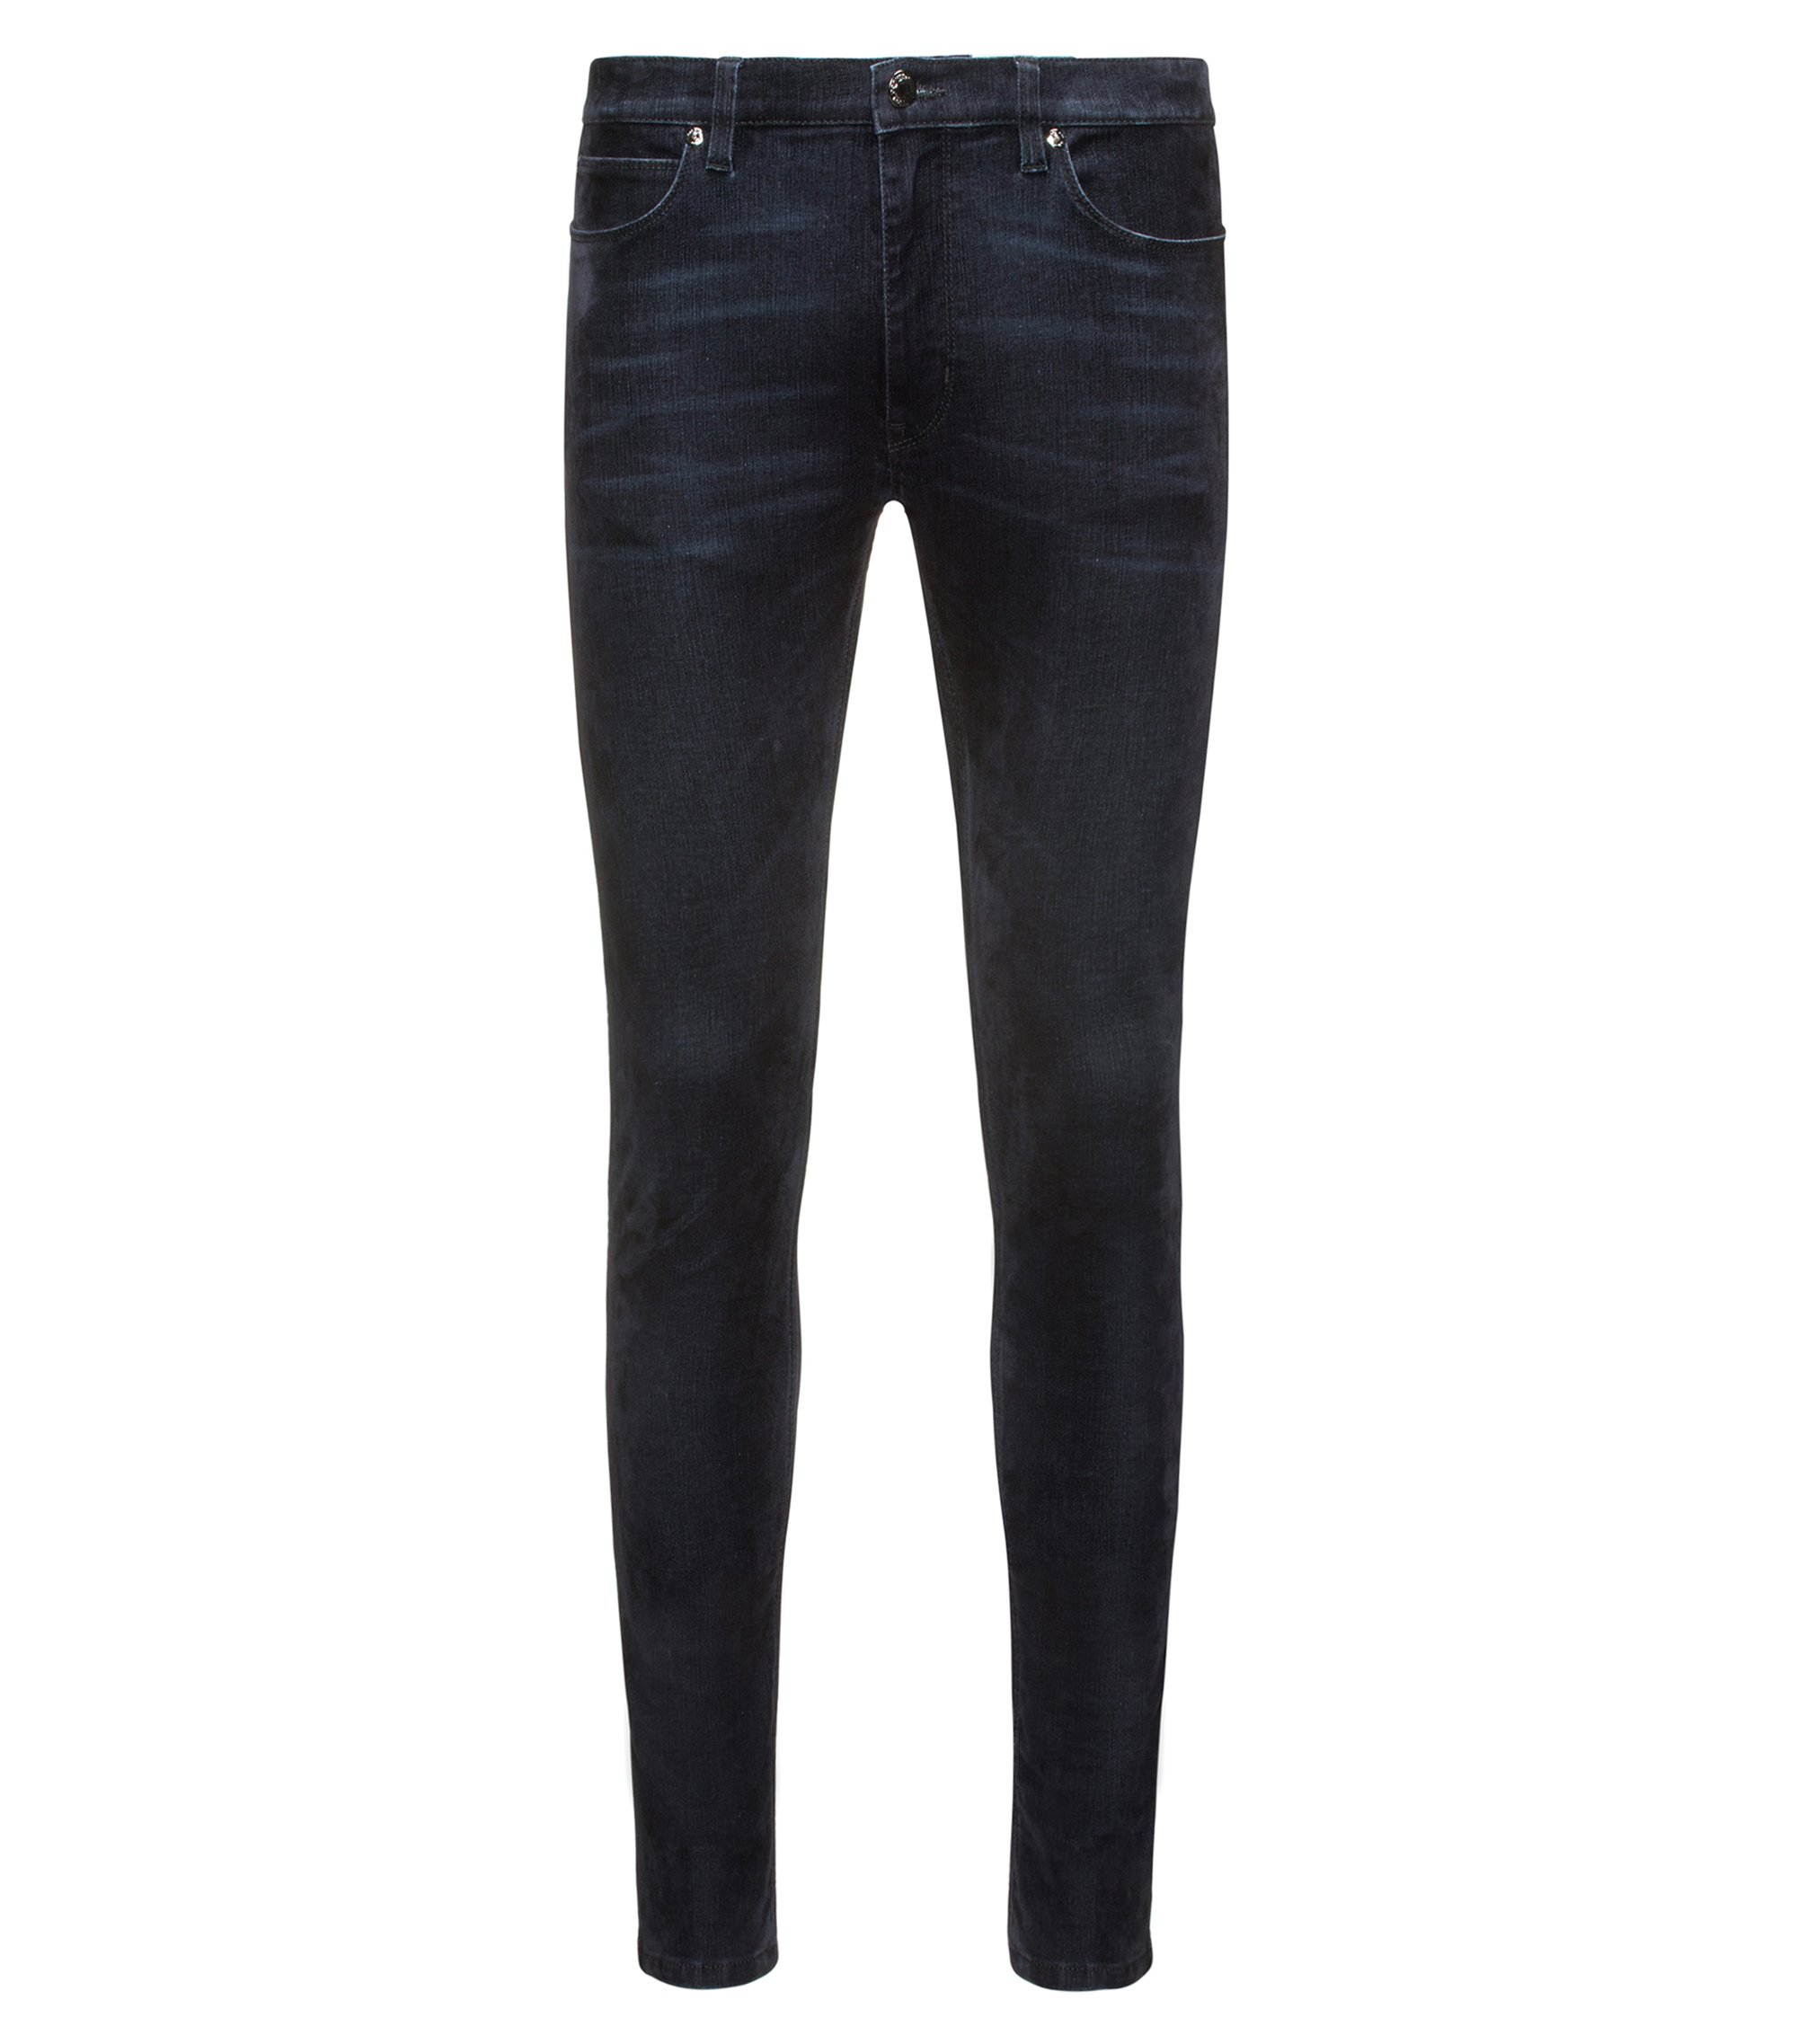 Jeans skinny fit in denim super elasticizzato blu con stampa flock, Blu scuro